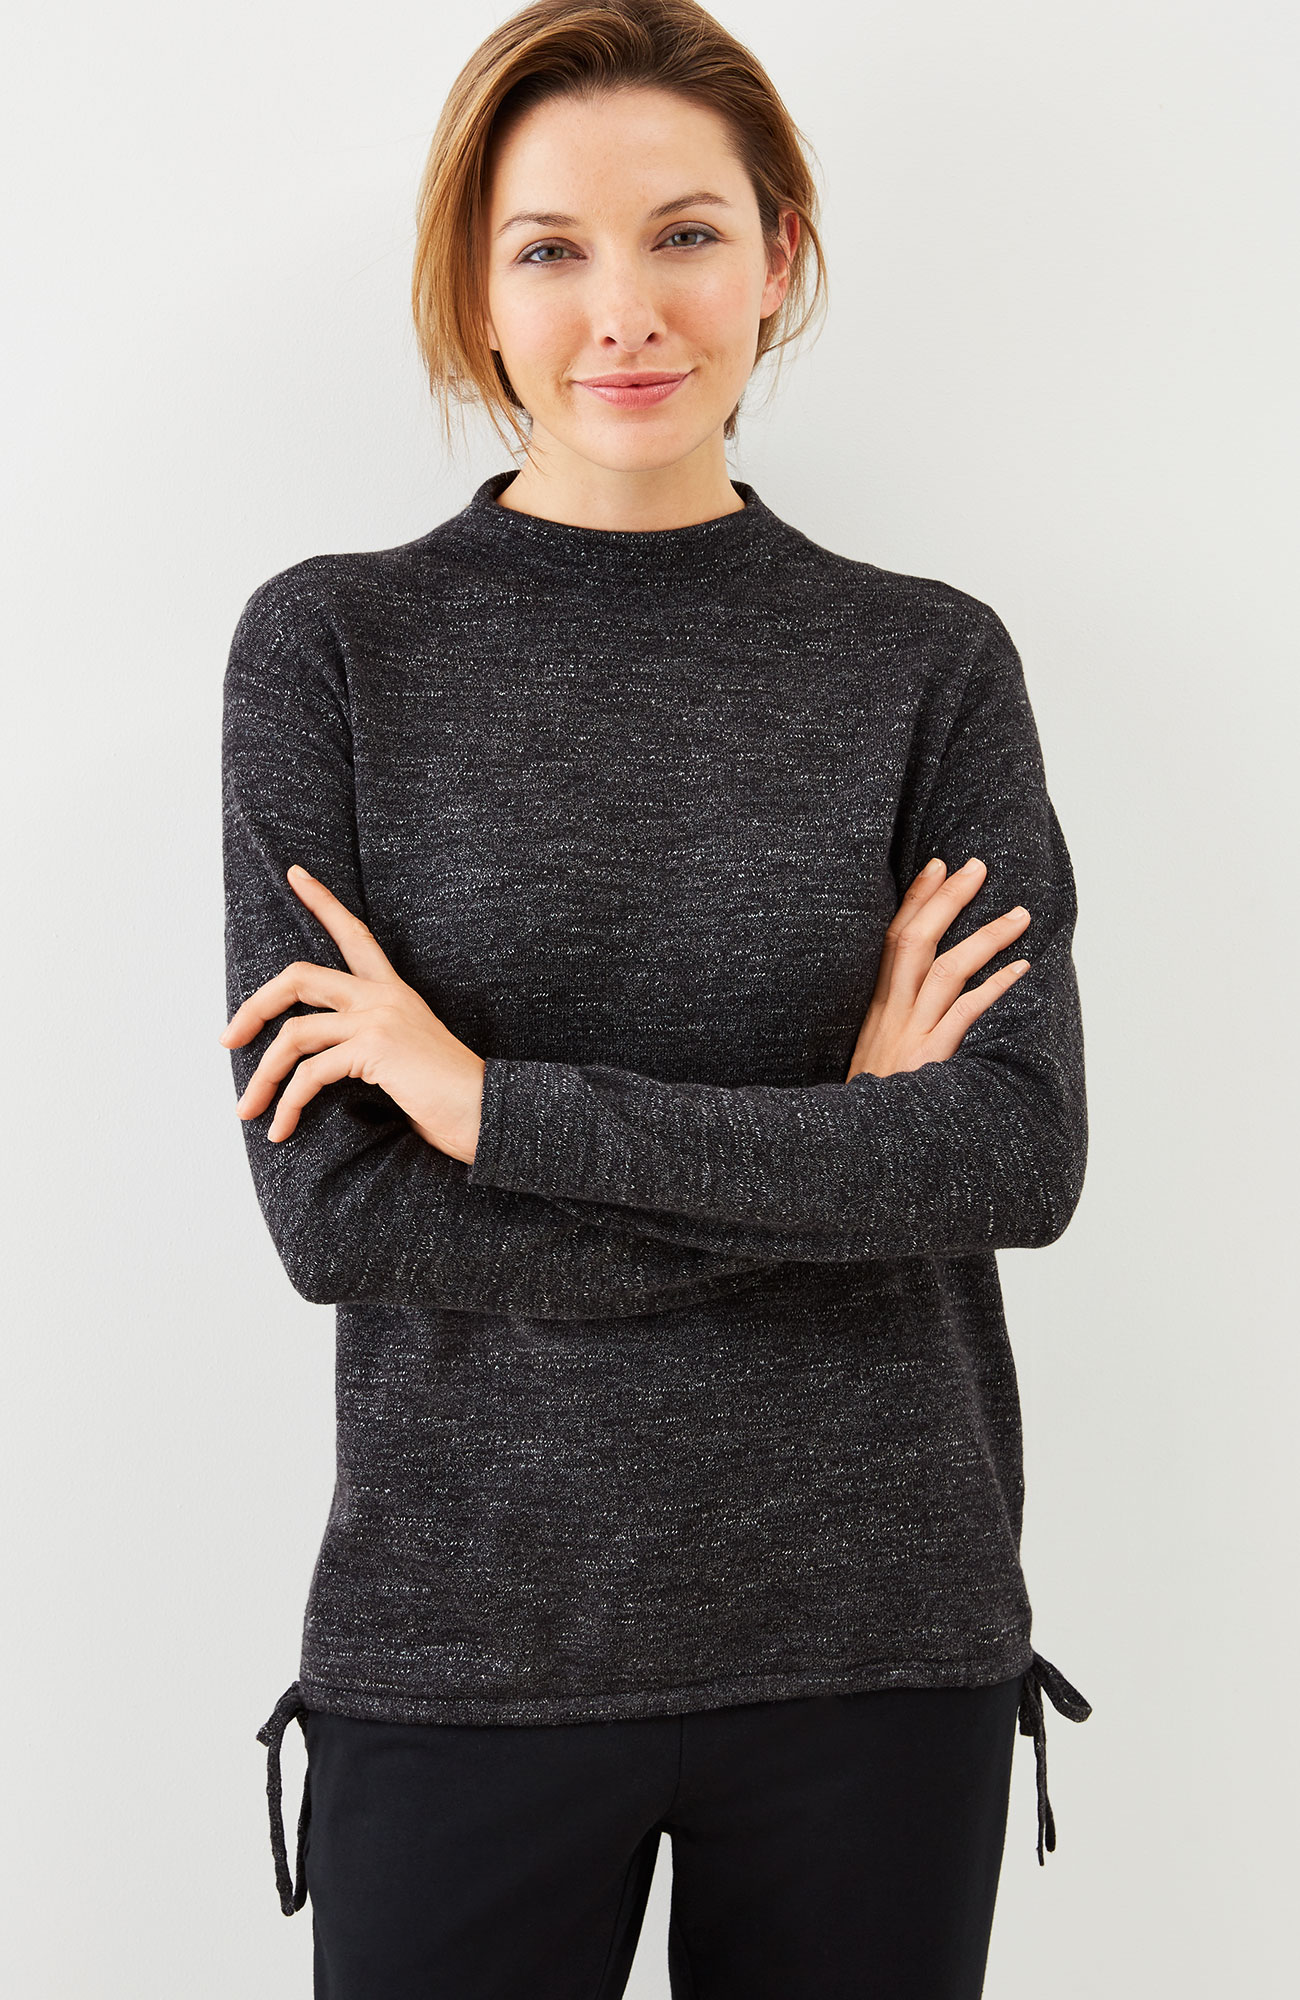 Pure Jill ultrasoft side-tie sweater